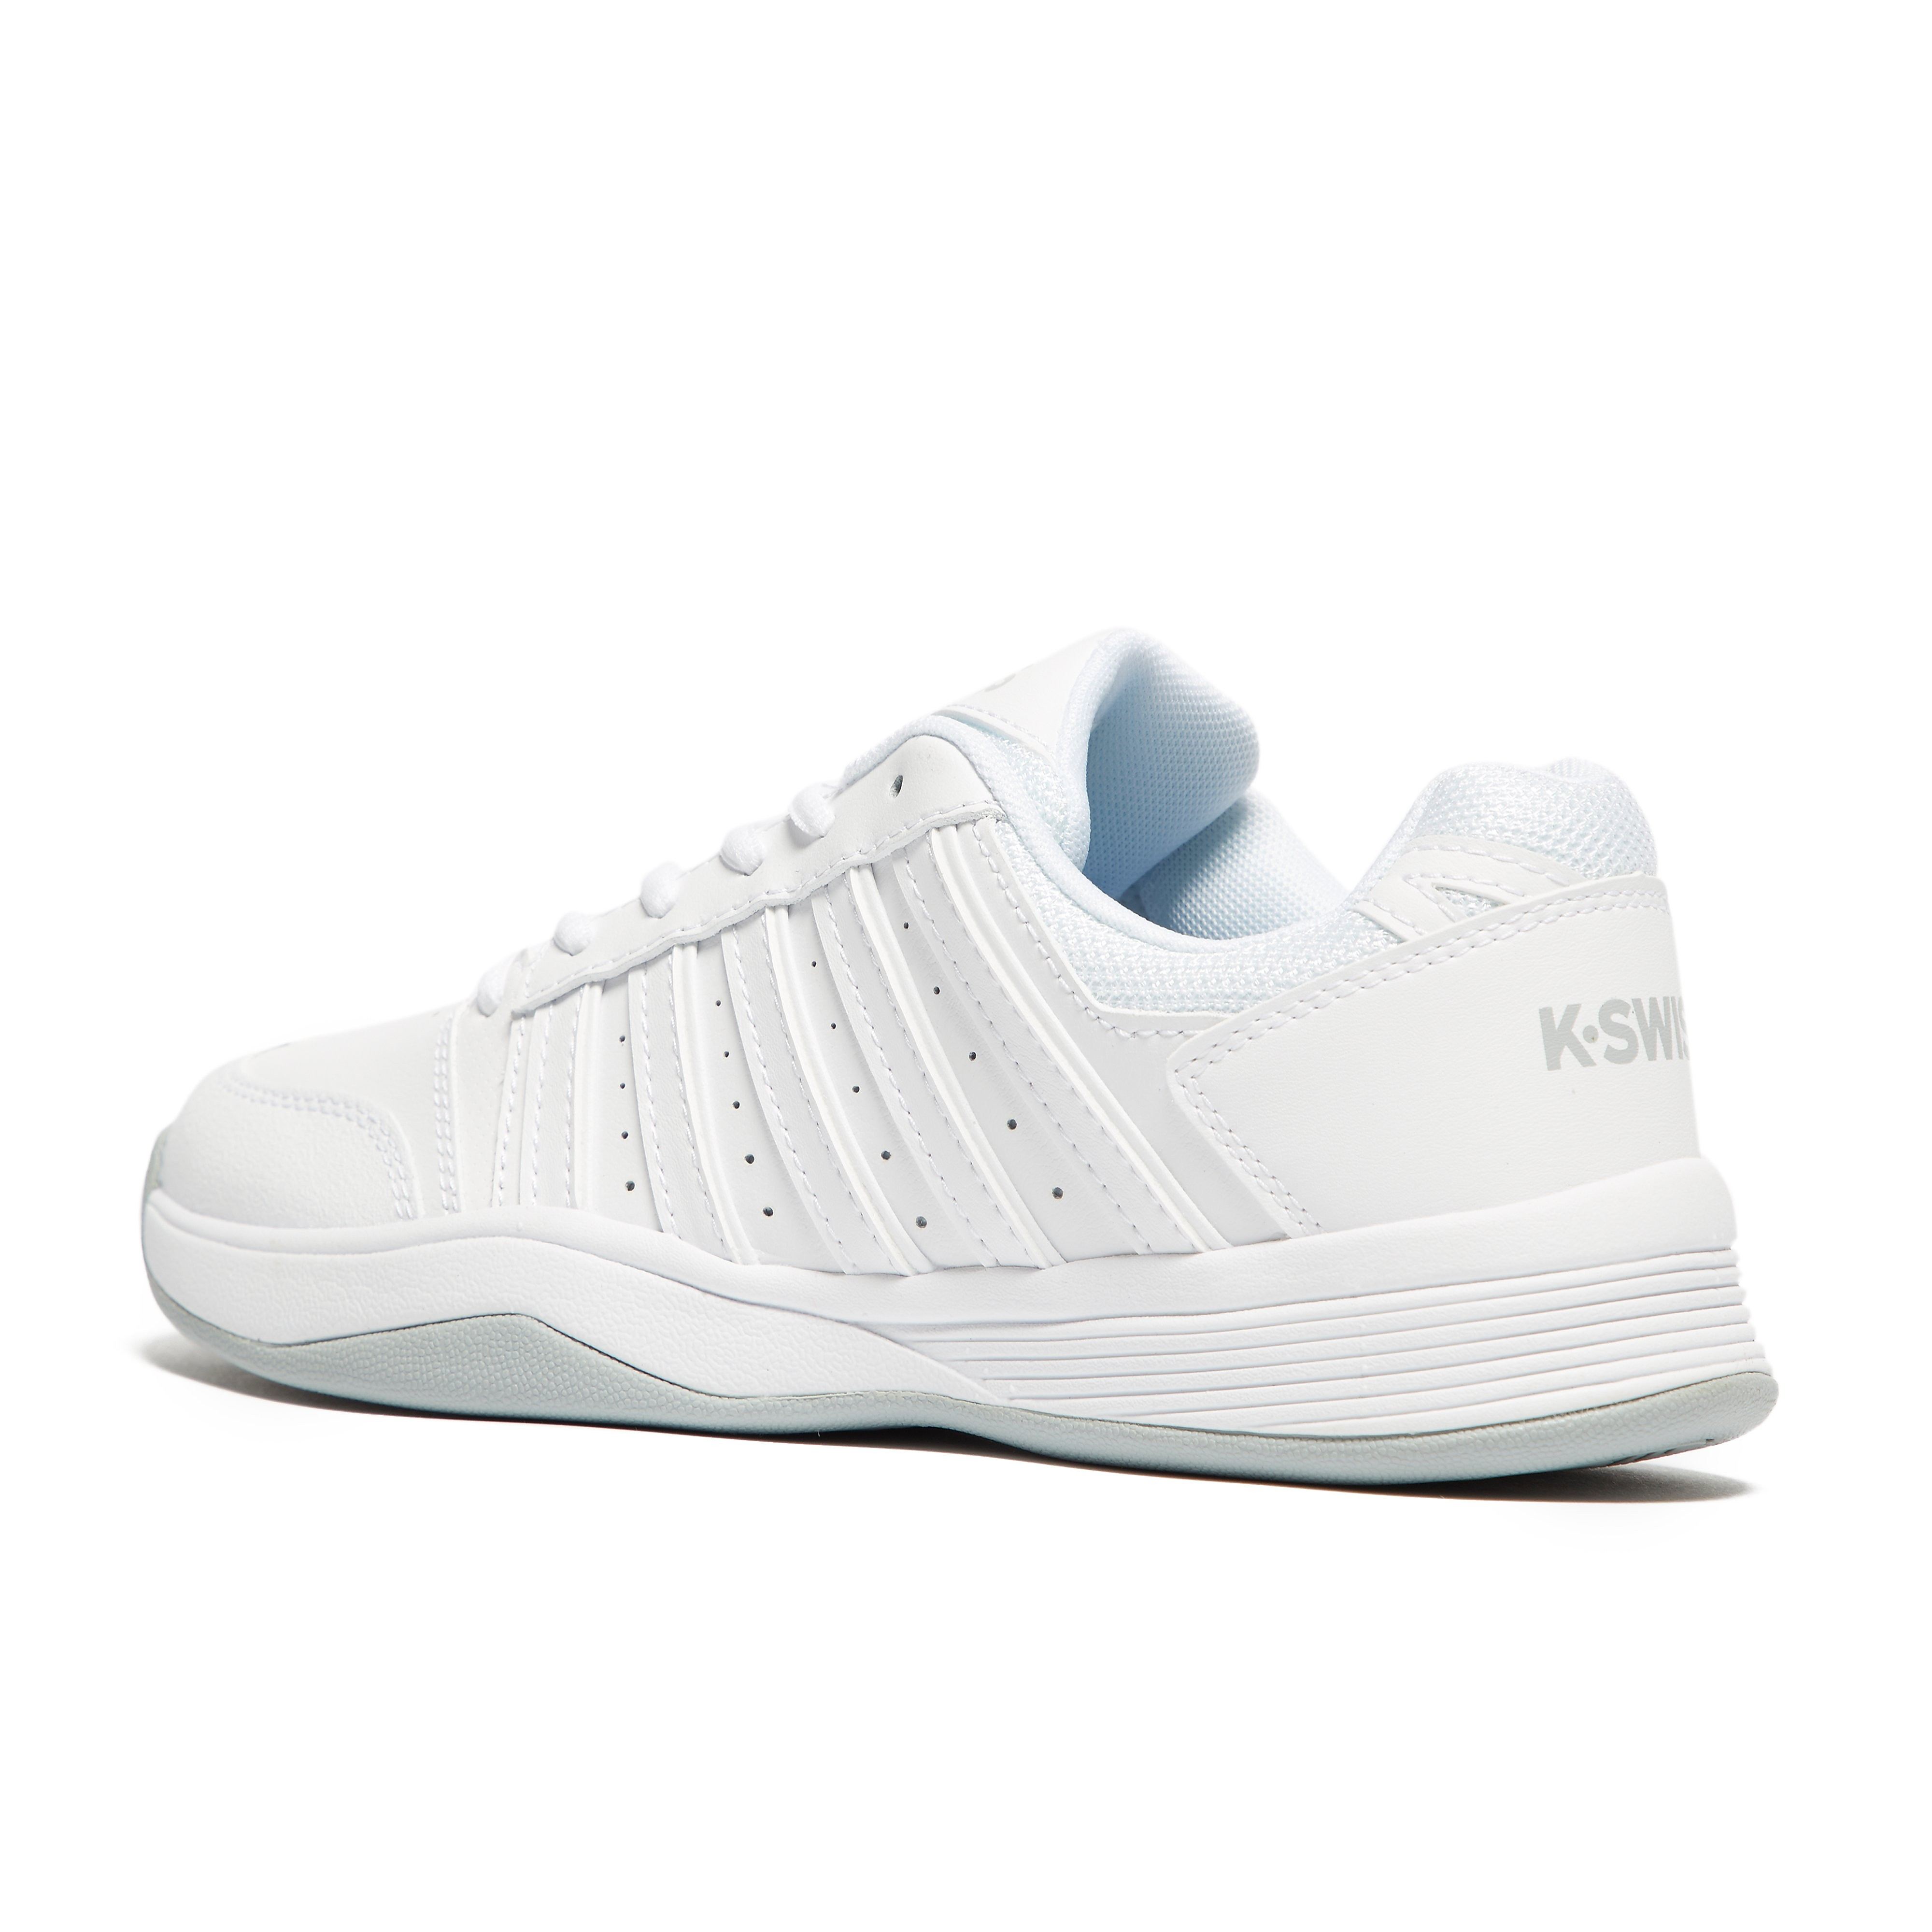 K-Swiss Court Smash All Court Men's Tennis Shoes